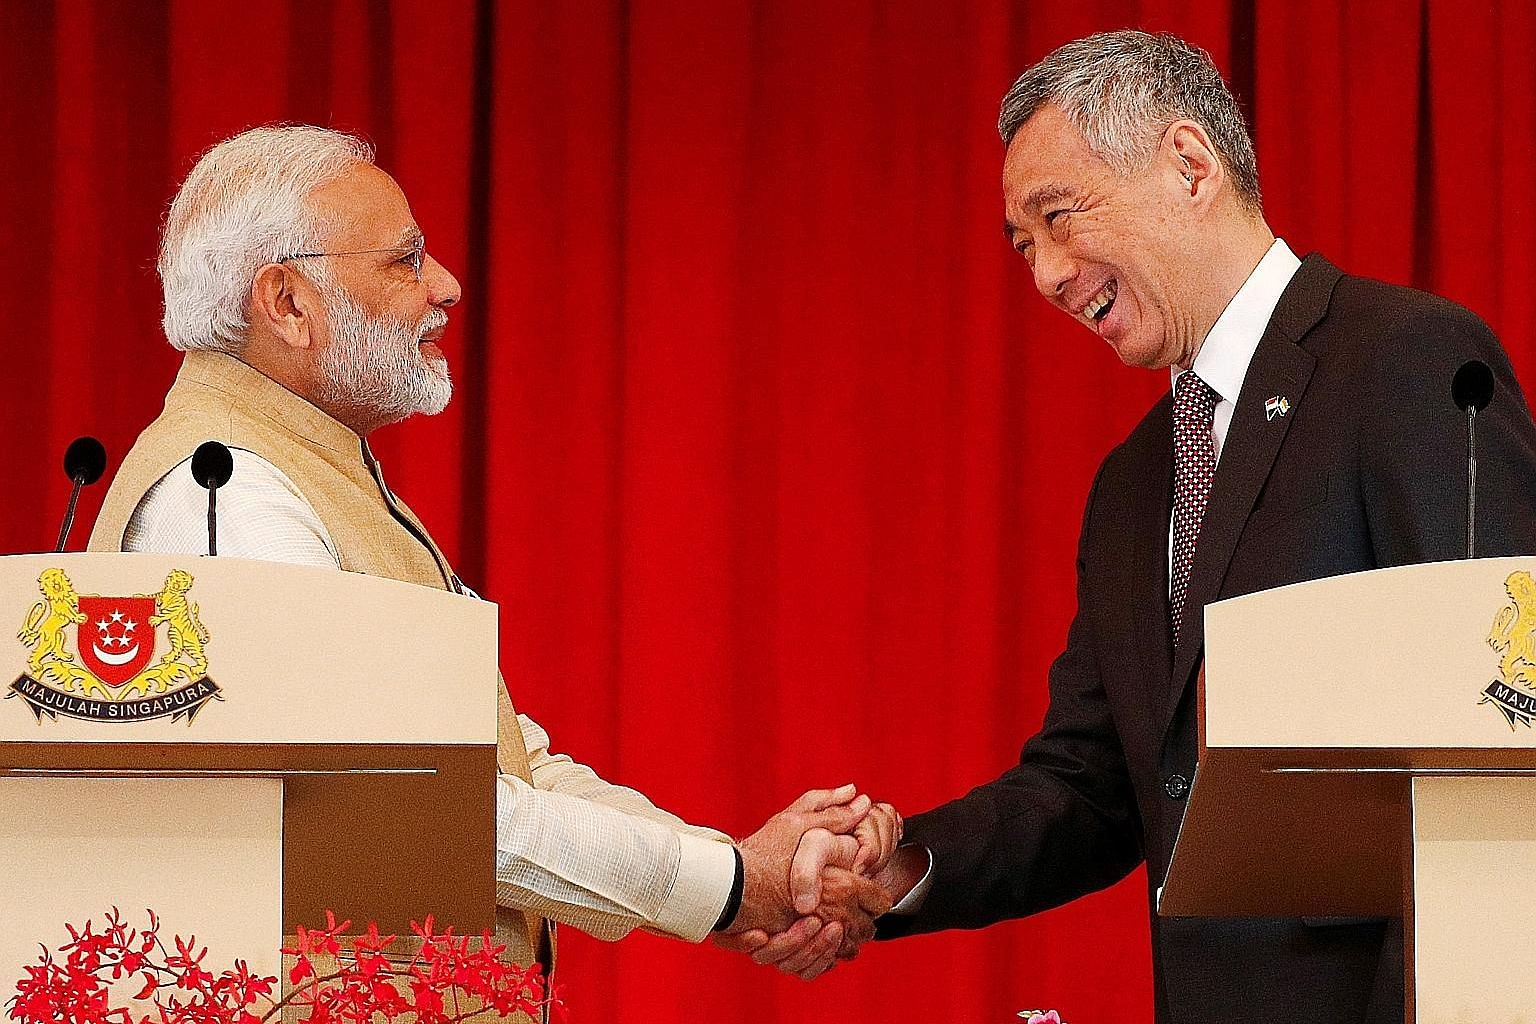 Indian Prime Minister Narendra Modi with Prime Minister Lee Hsien Loong at the Istana yesterday. A joint statement issued by both leaders noted the importance of fintech as the new driver of the bilateral economic partnership.